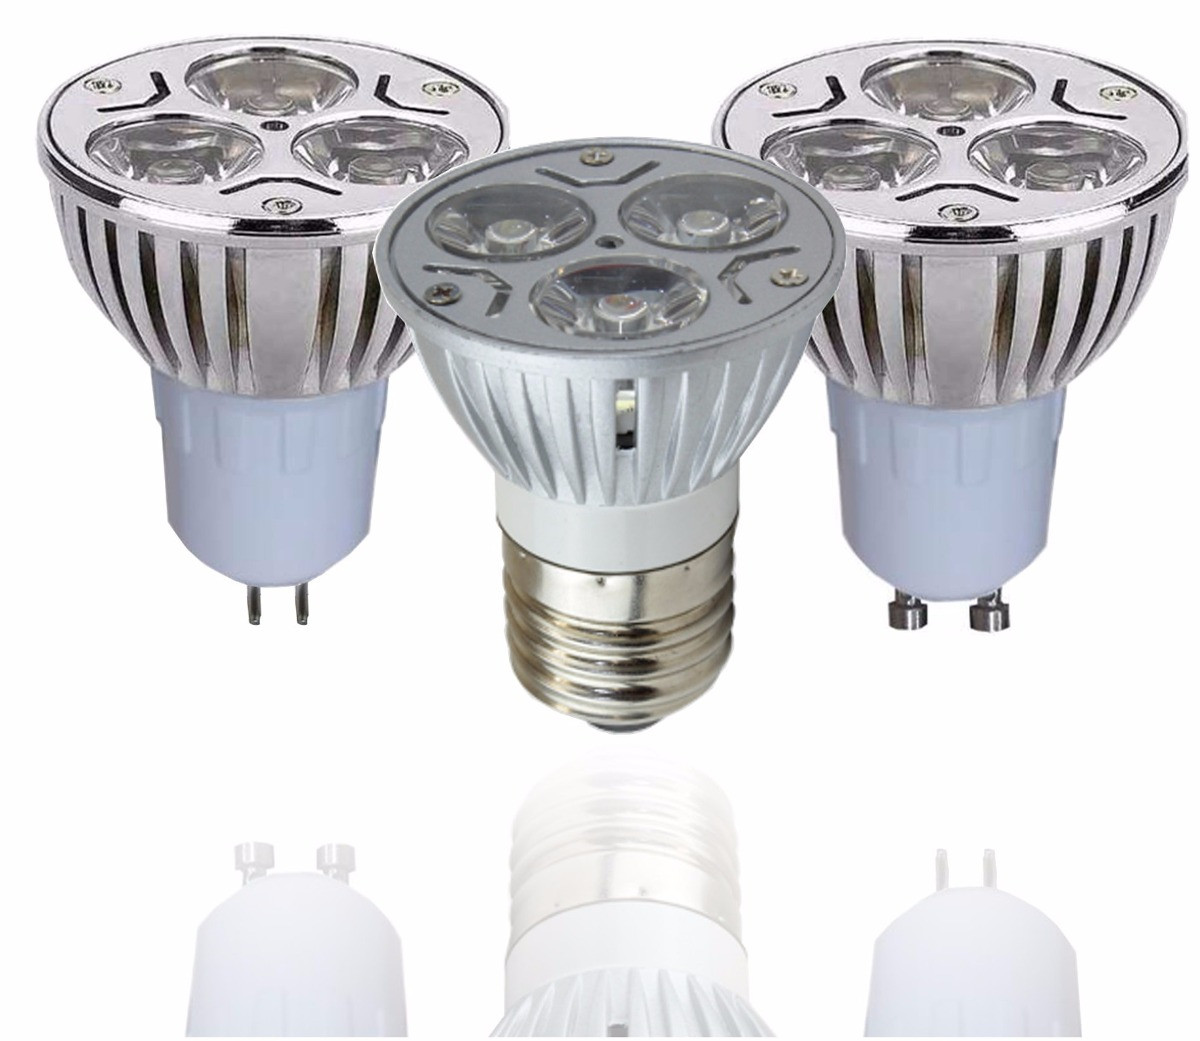 Focos Led Empotrables Extraplanos Contemporáneo Foco Led Dicroico E27 Y Mr16 De 3w 127 Watts $ 35 00 En Of Focos Led Empotrables Extraplanos Innovador Pra Juego De 3 Focos Led Empotrables En Techo andrej